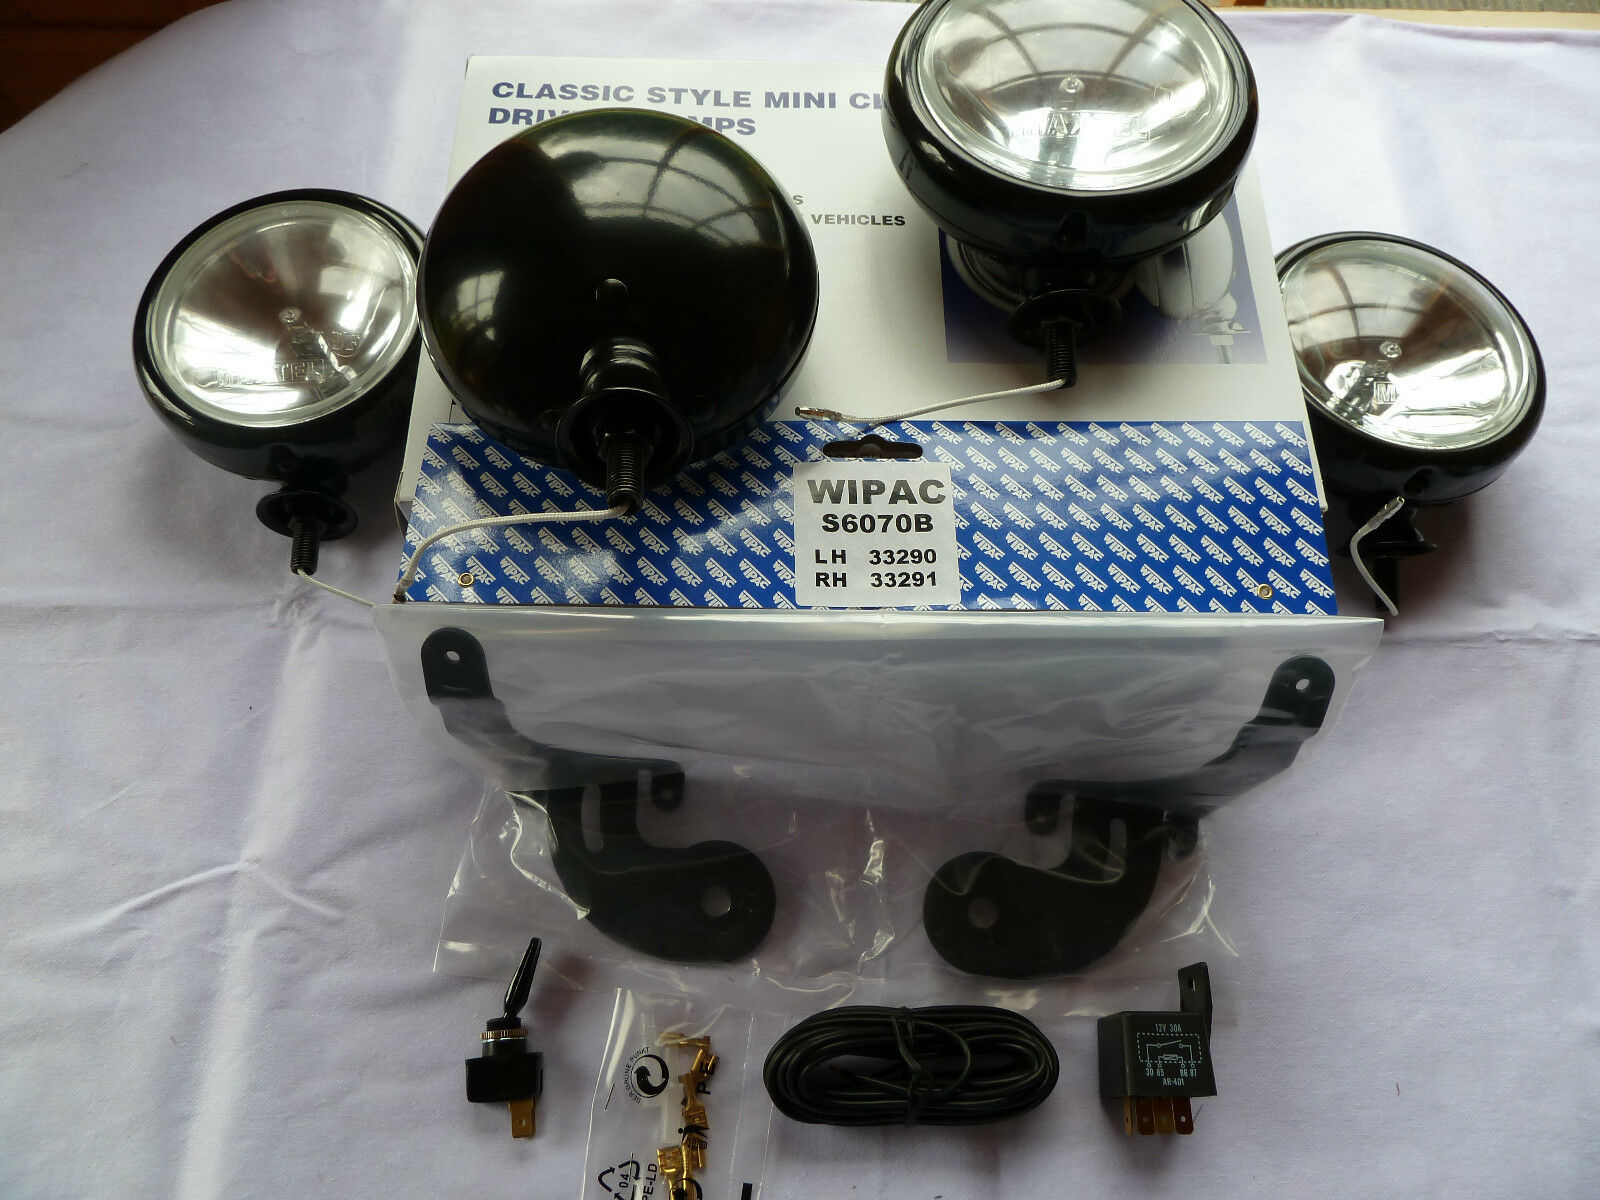 4 BMW MINI SPOT LIGHTS DRIVING LAMPS (2 PAIRS) AUXILARY LAMPS FULL KIT 2001 2007